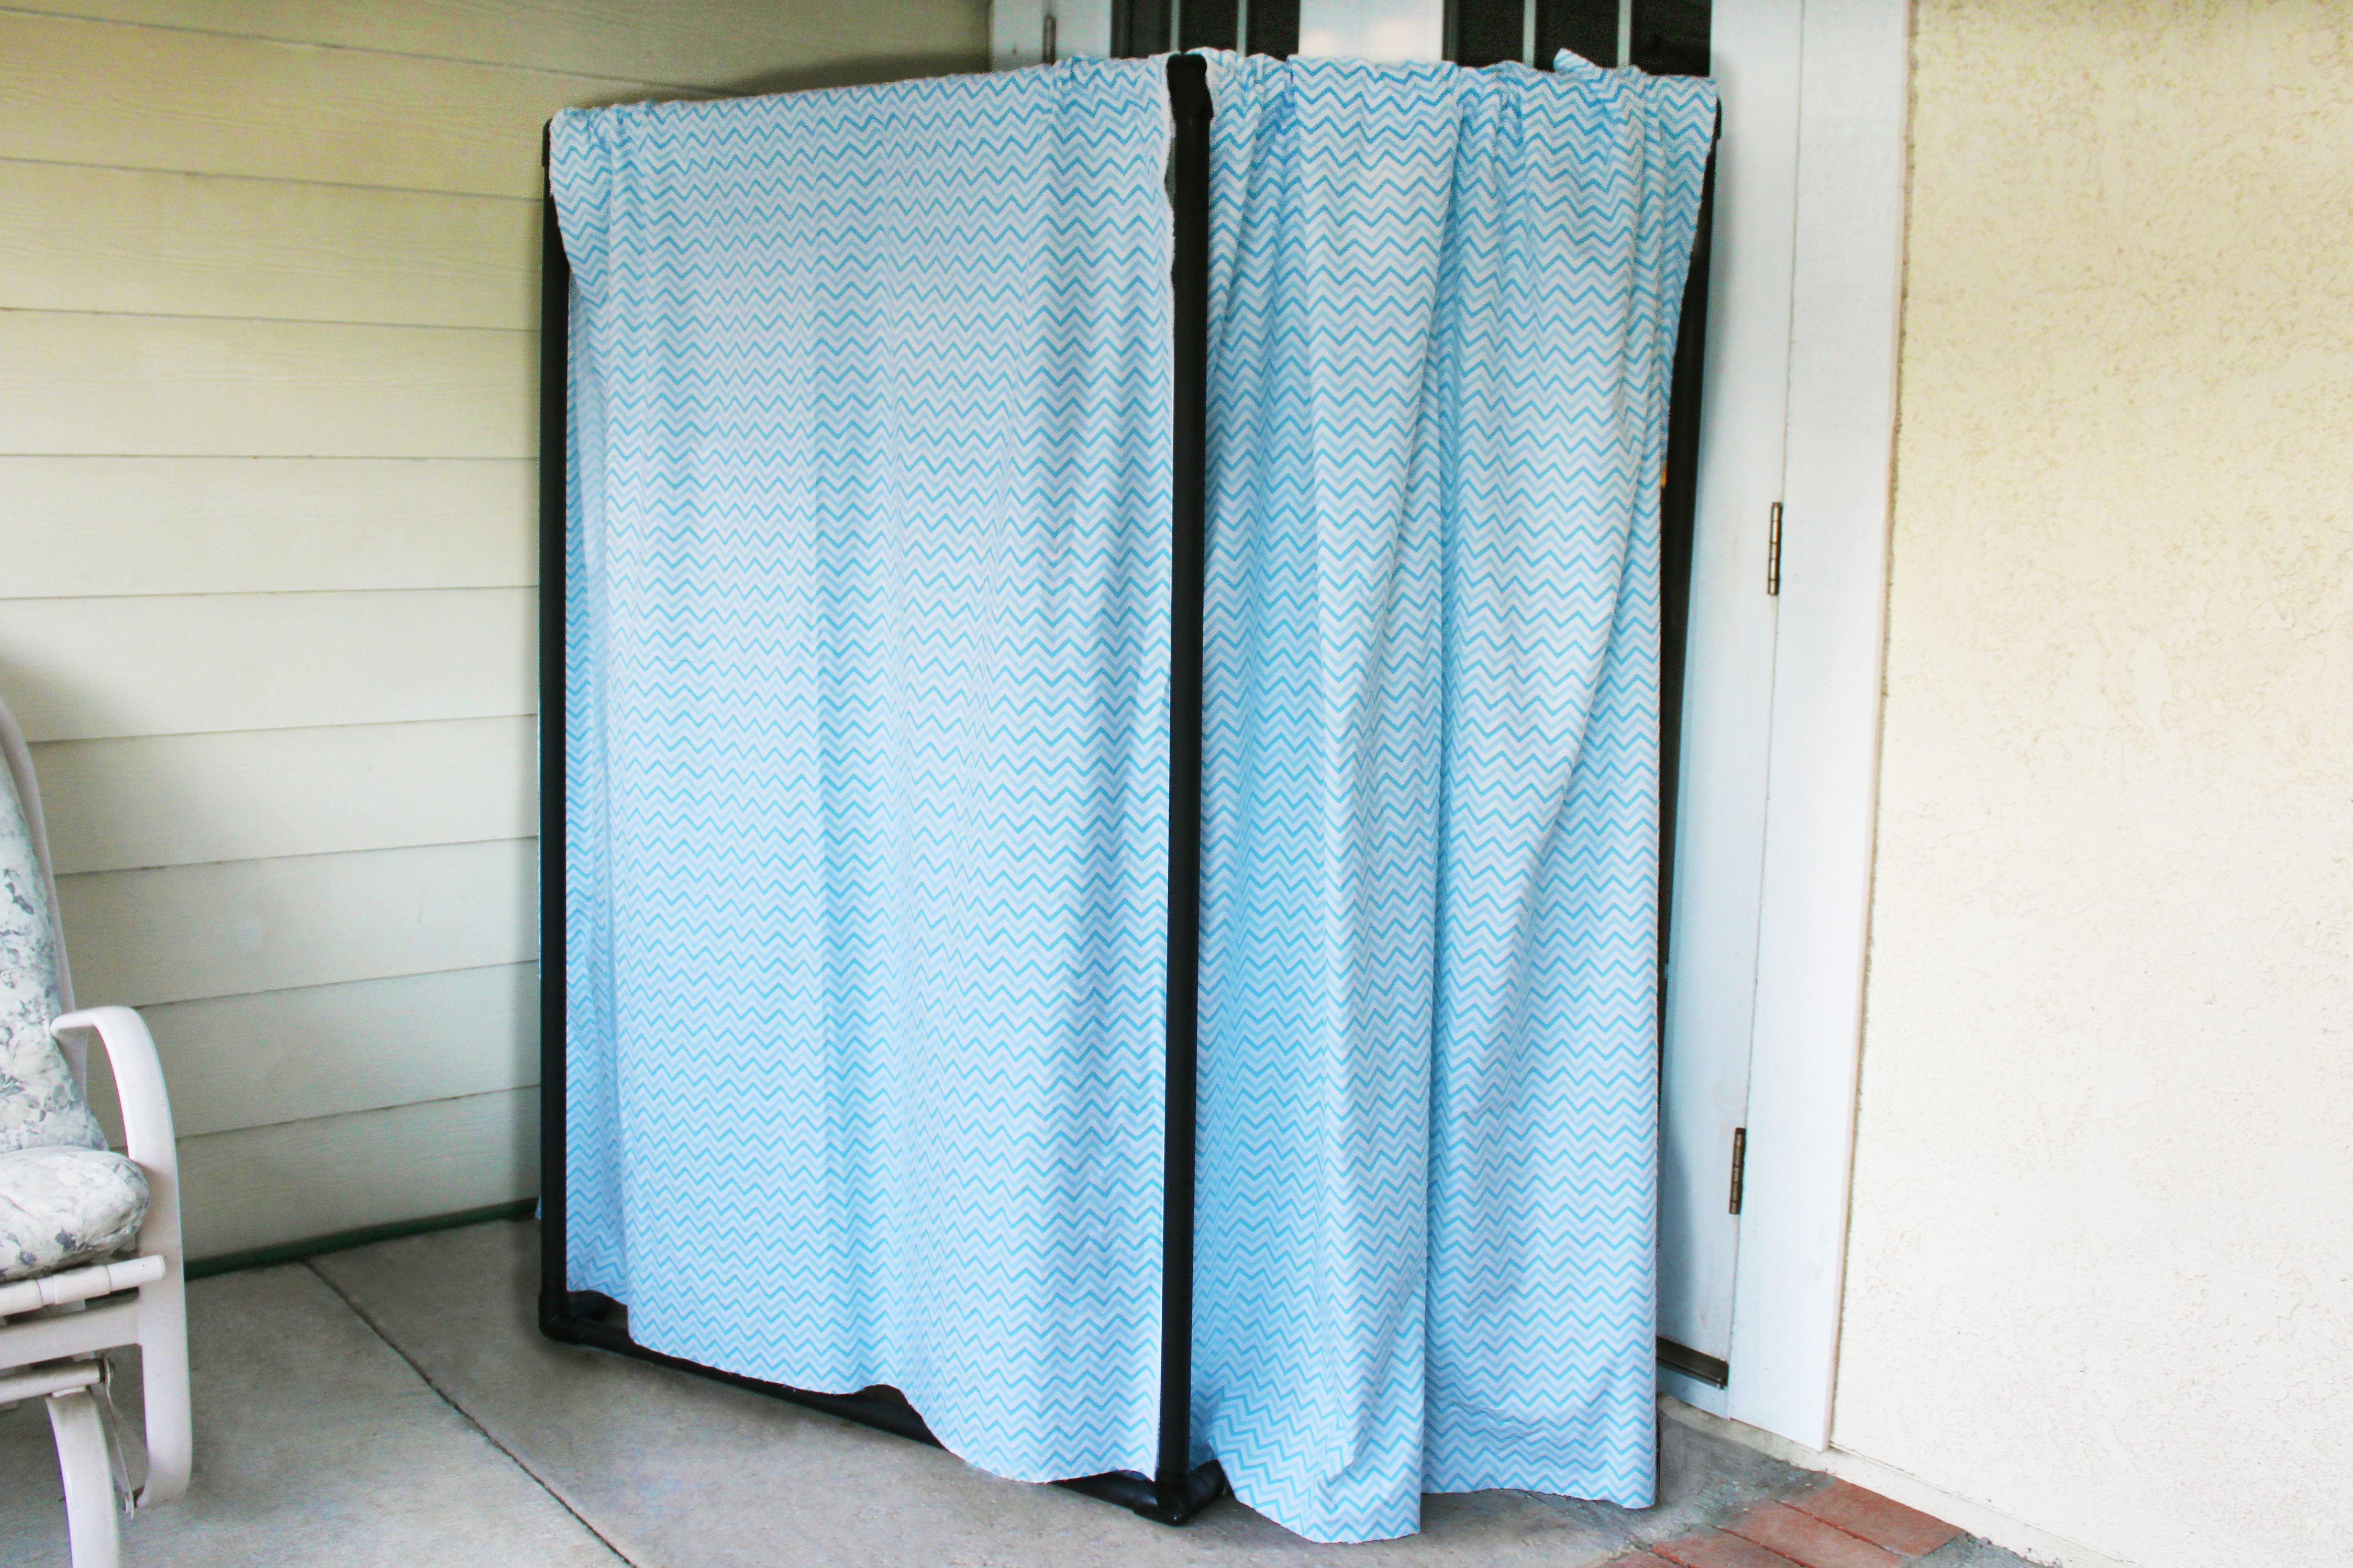 How to build a pvc room divider divider pvc pipe and pipes